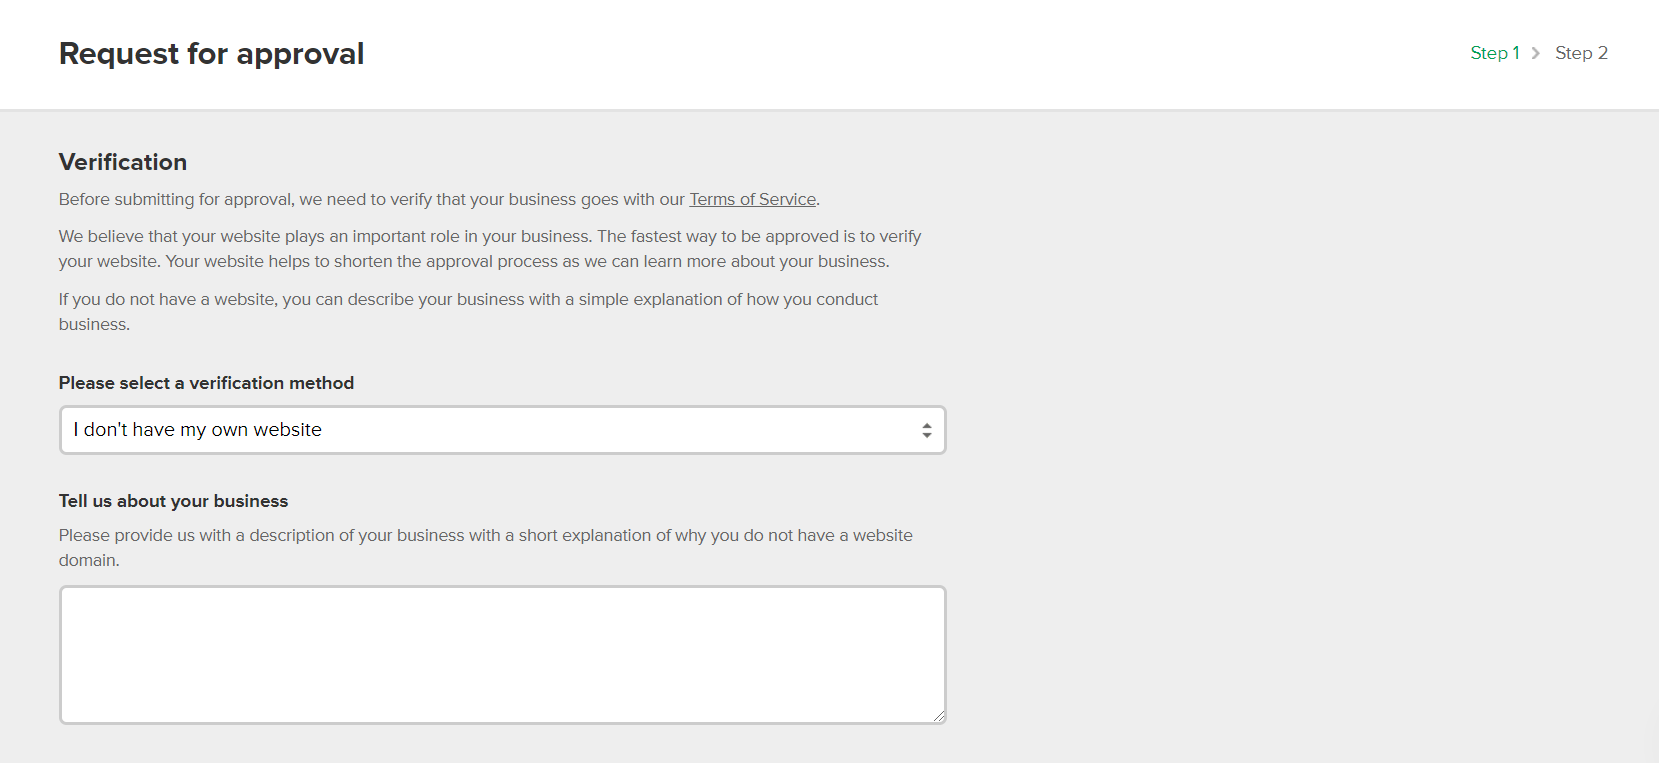 requesting approval without a website